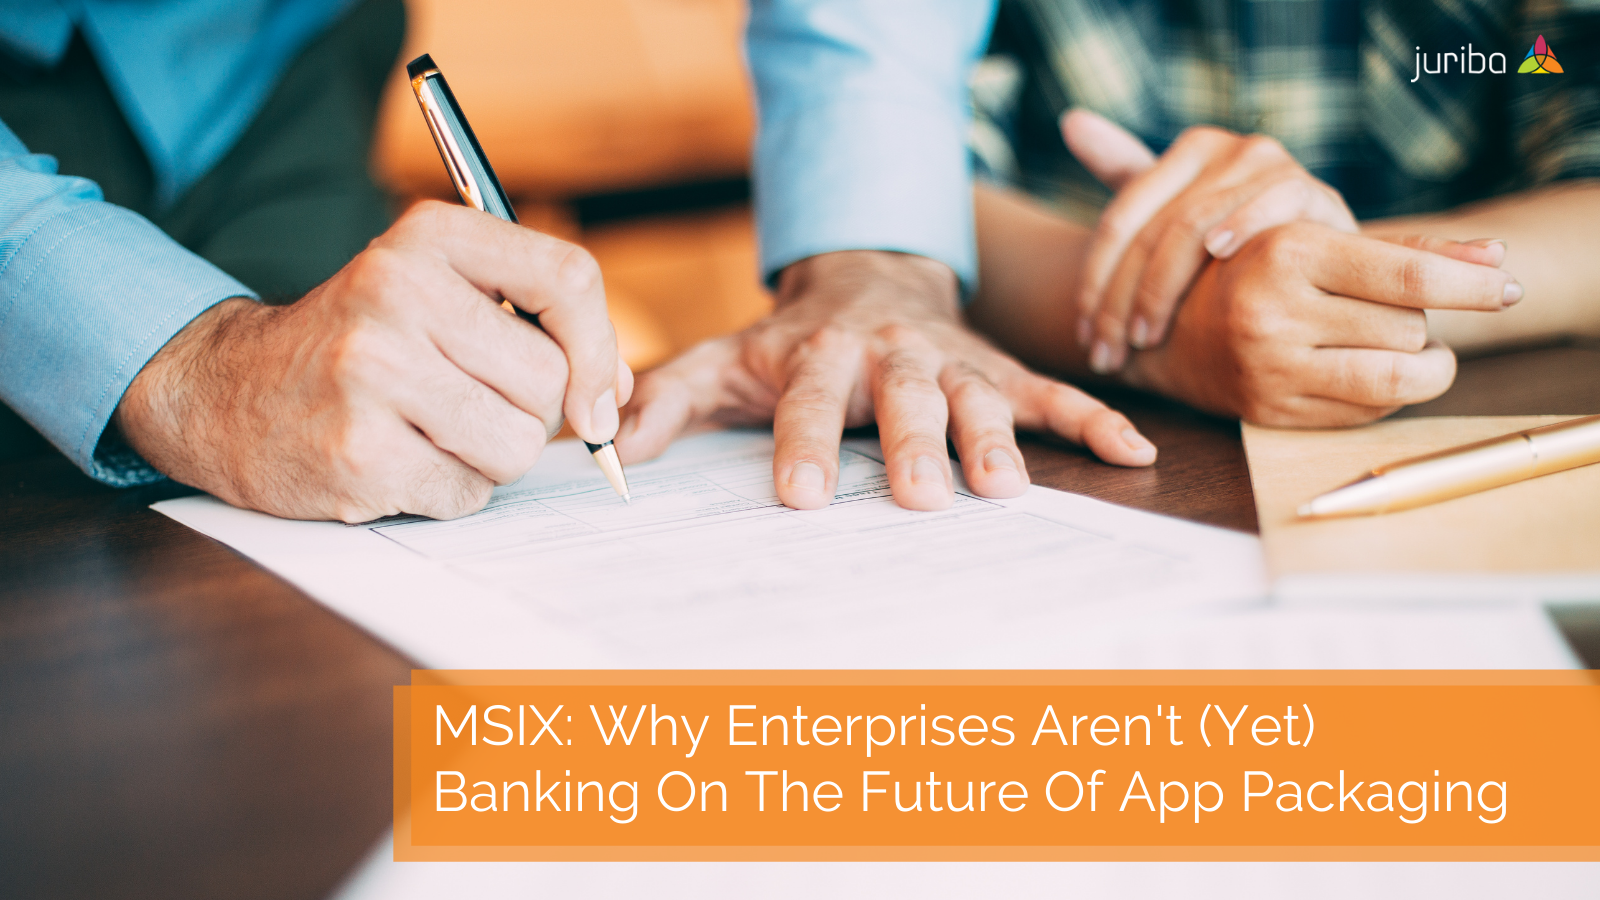 MSIX_ Why Enterprises Arent (Yet) Banking On The Future Of App Packaging